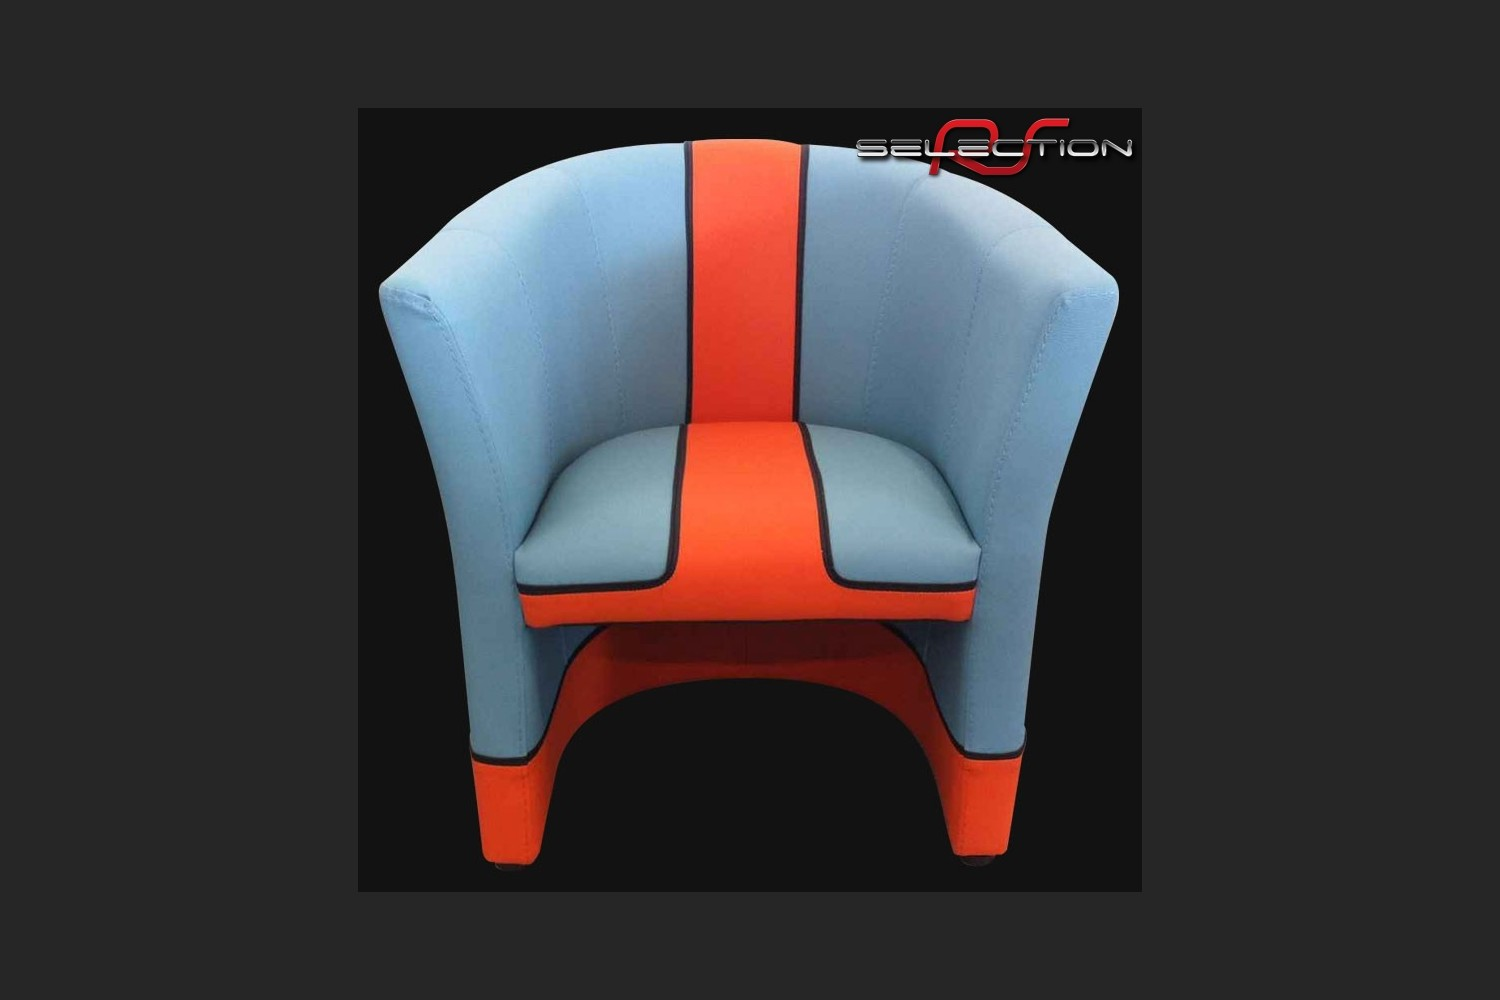 fauteuil cabriolet racing inside n 20 bleu racing team orange selection rs mini 911 3. Black Bedroom Furniture Sets. Home Design Ideas